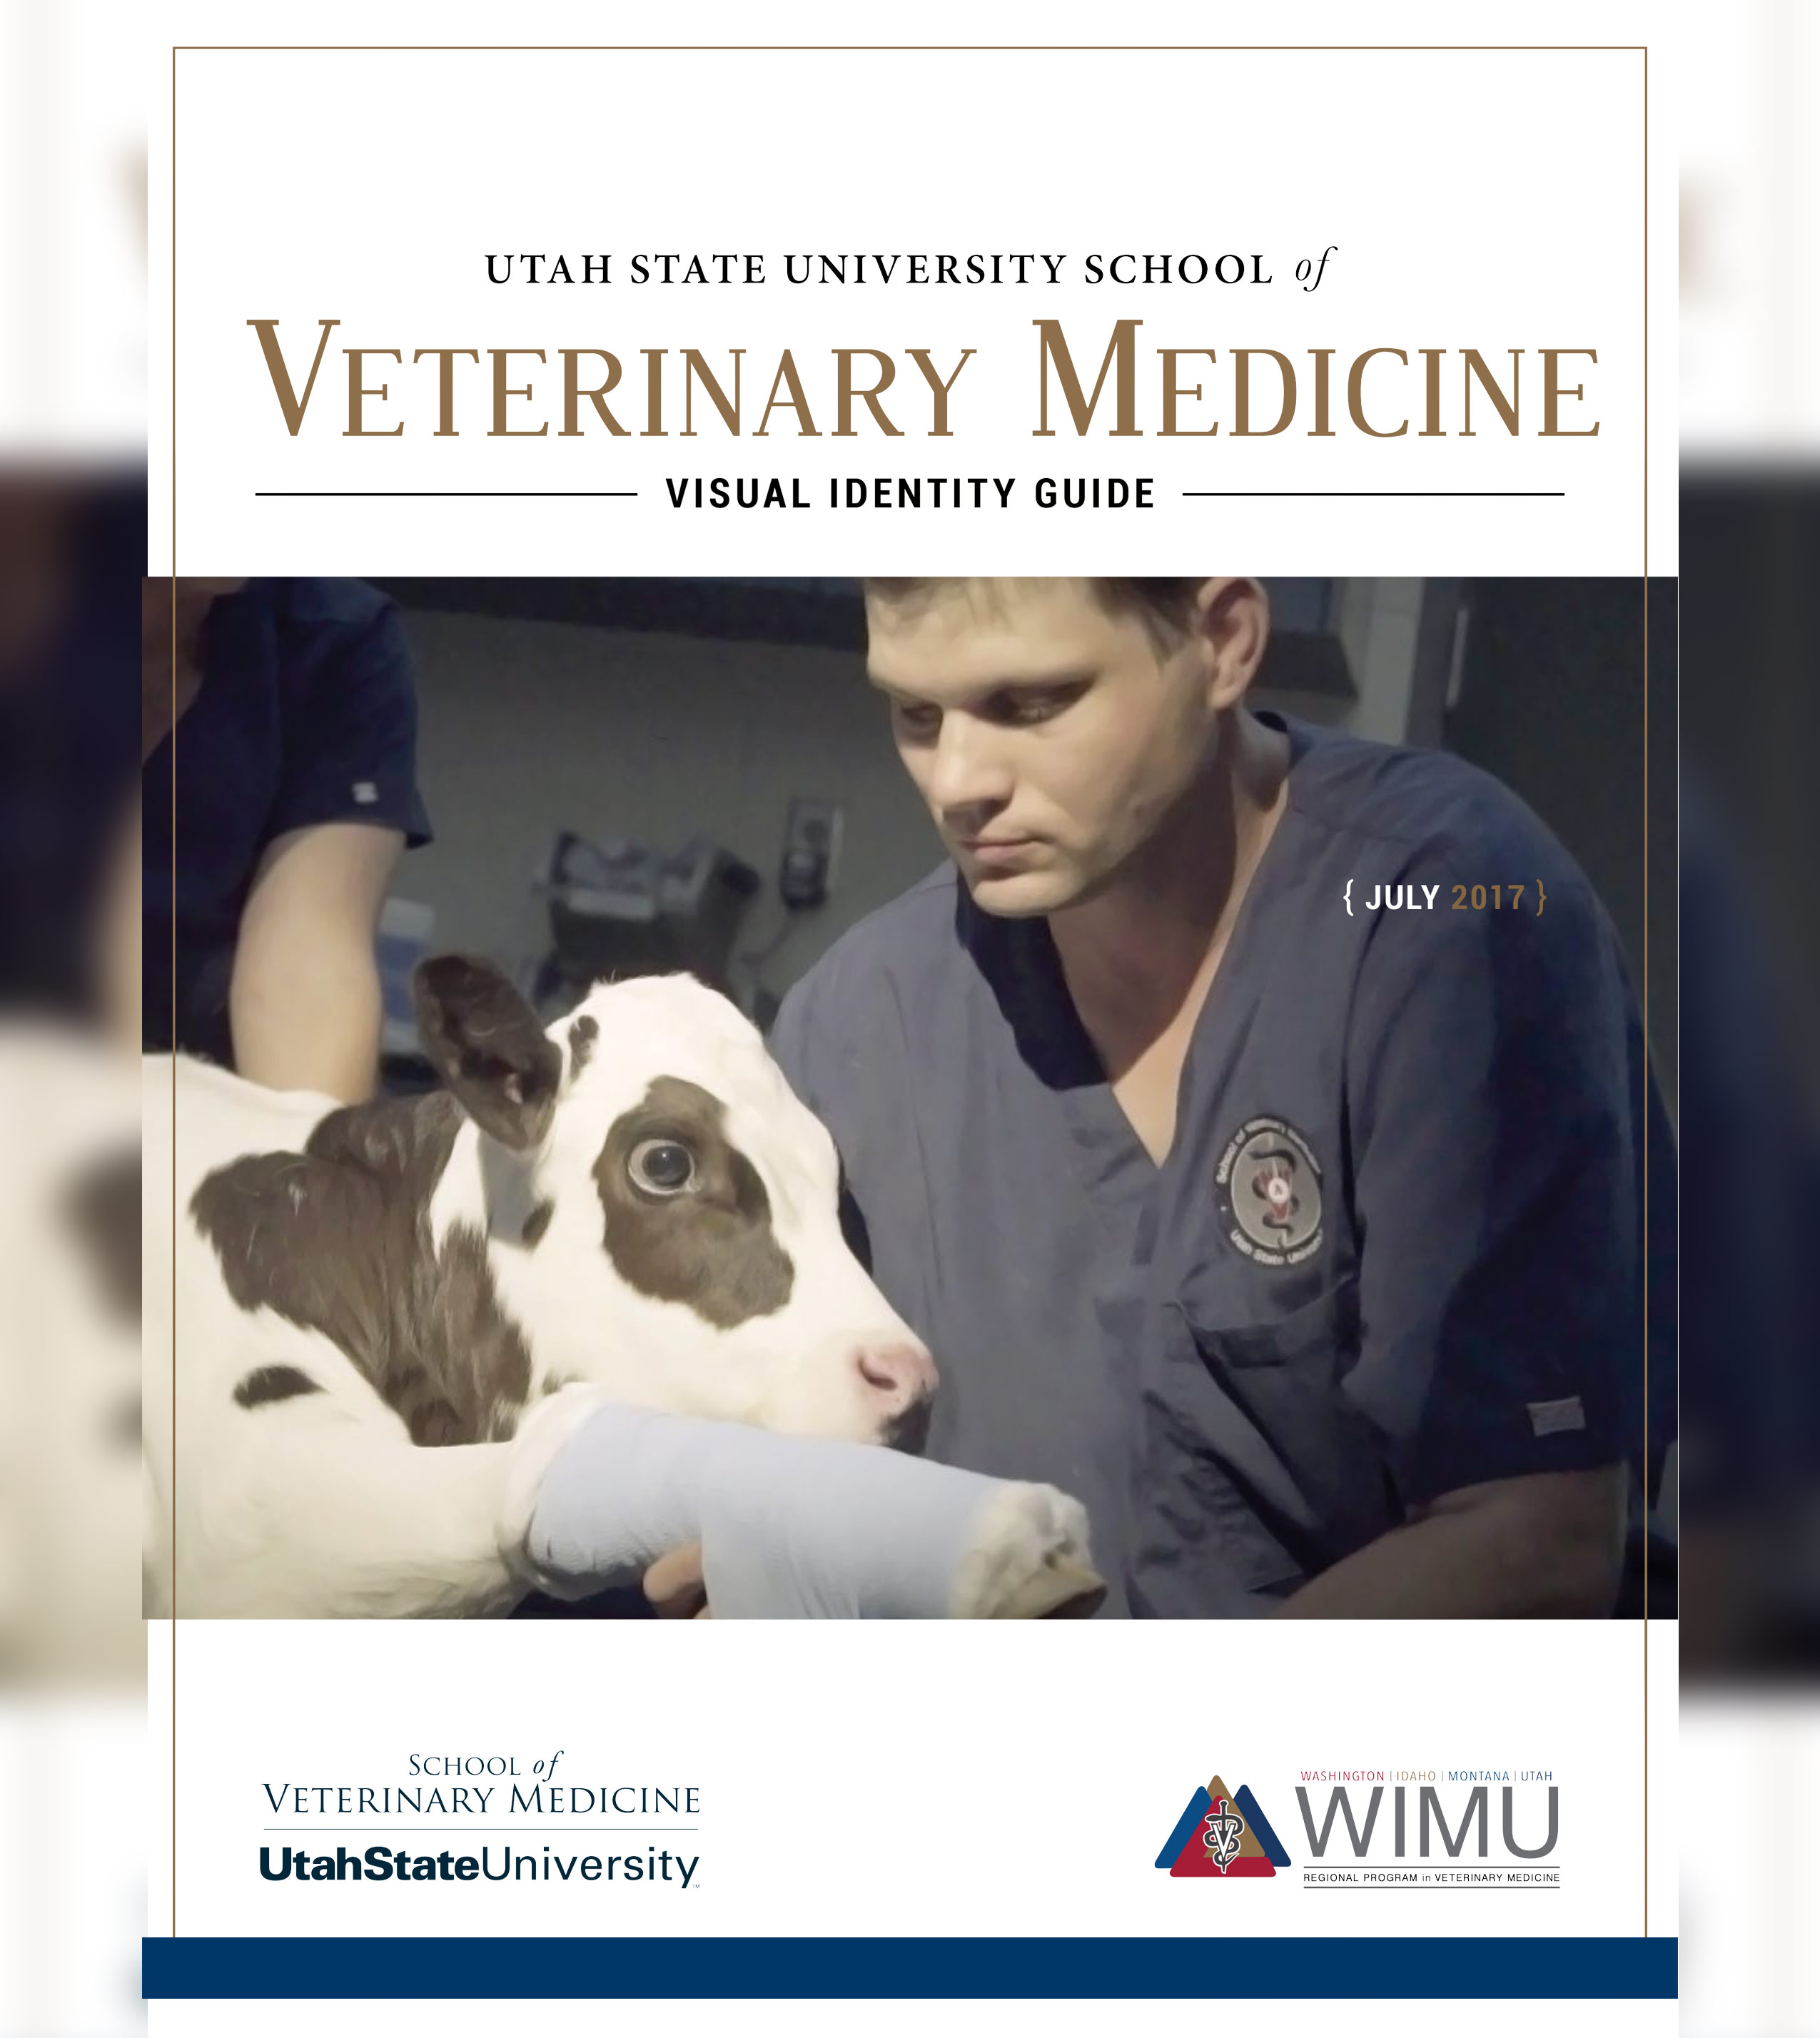 VetMed Visual Identity Guide Cover